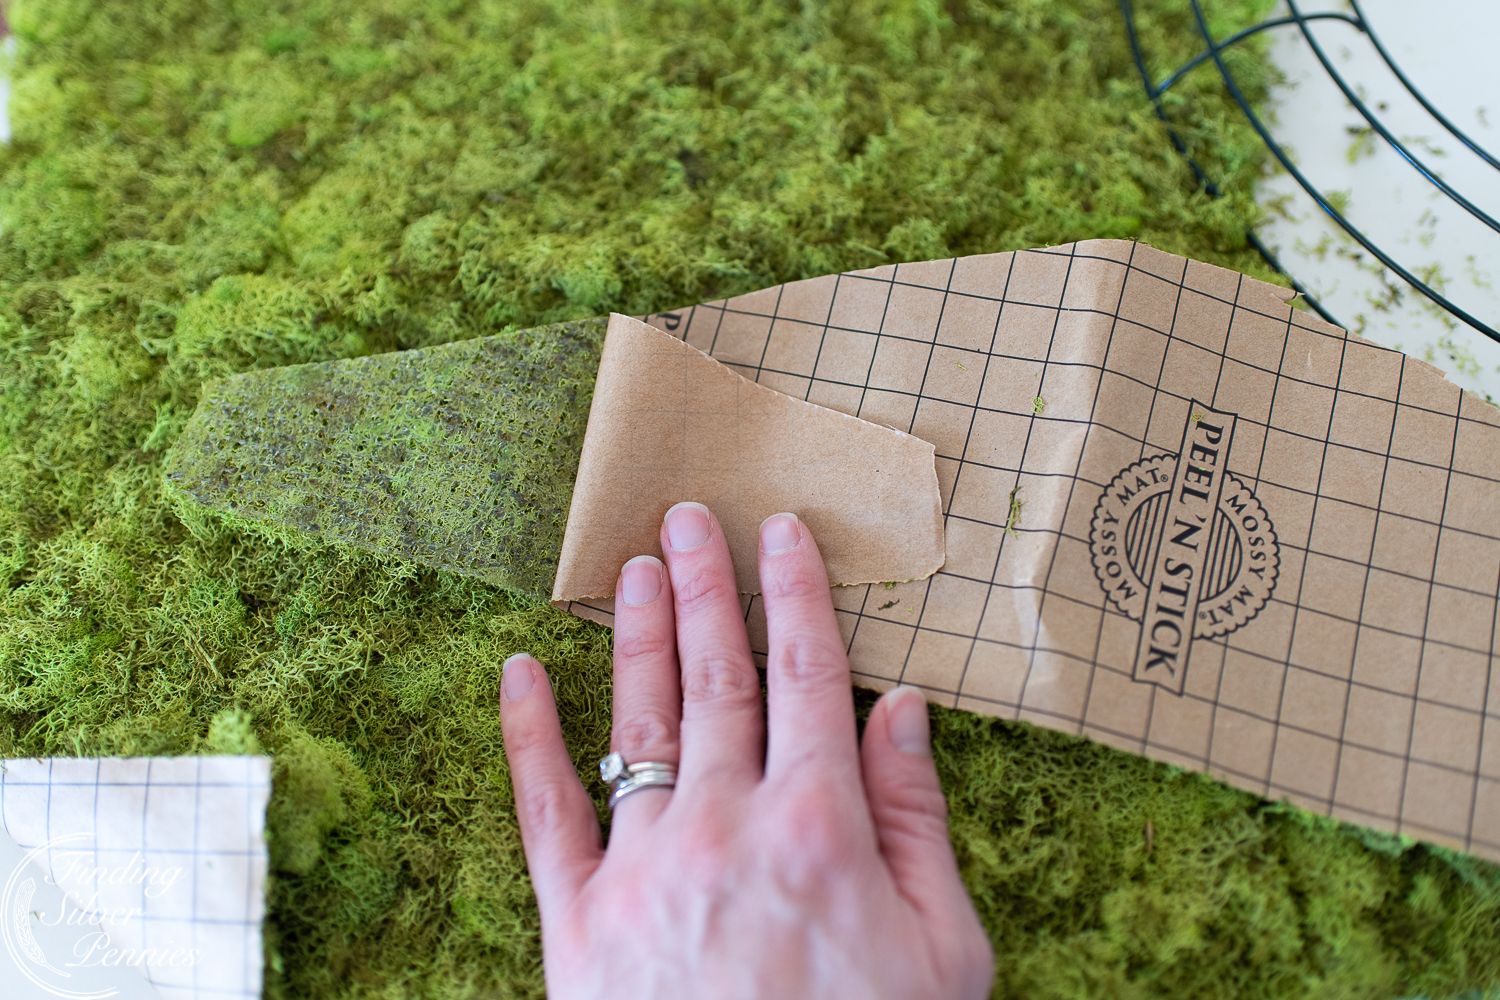 Peel n Stick Moss and what to make with it! #moss #crafts #DIYmosswreath #diymossnapkinrings #winterdecorating #hygge #cozyliving